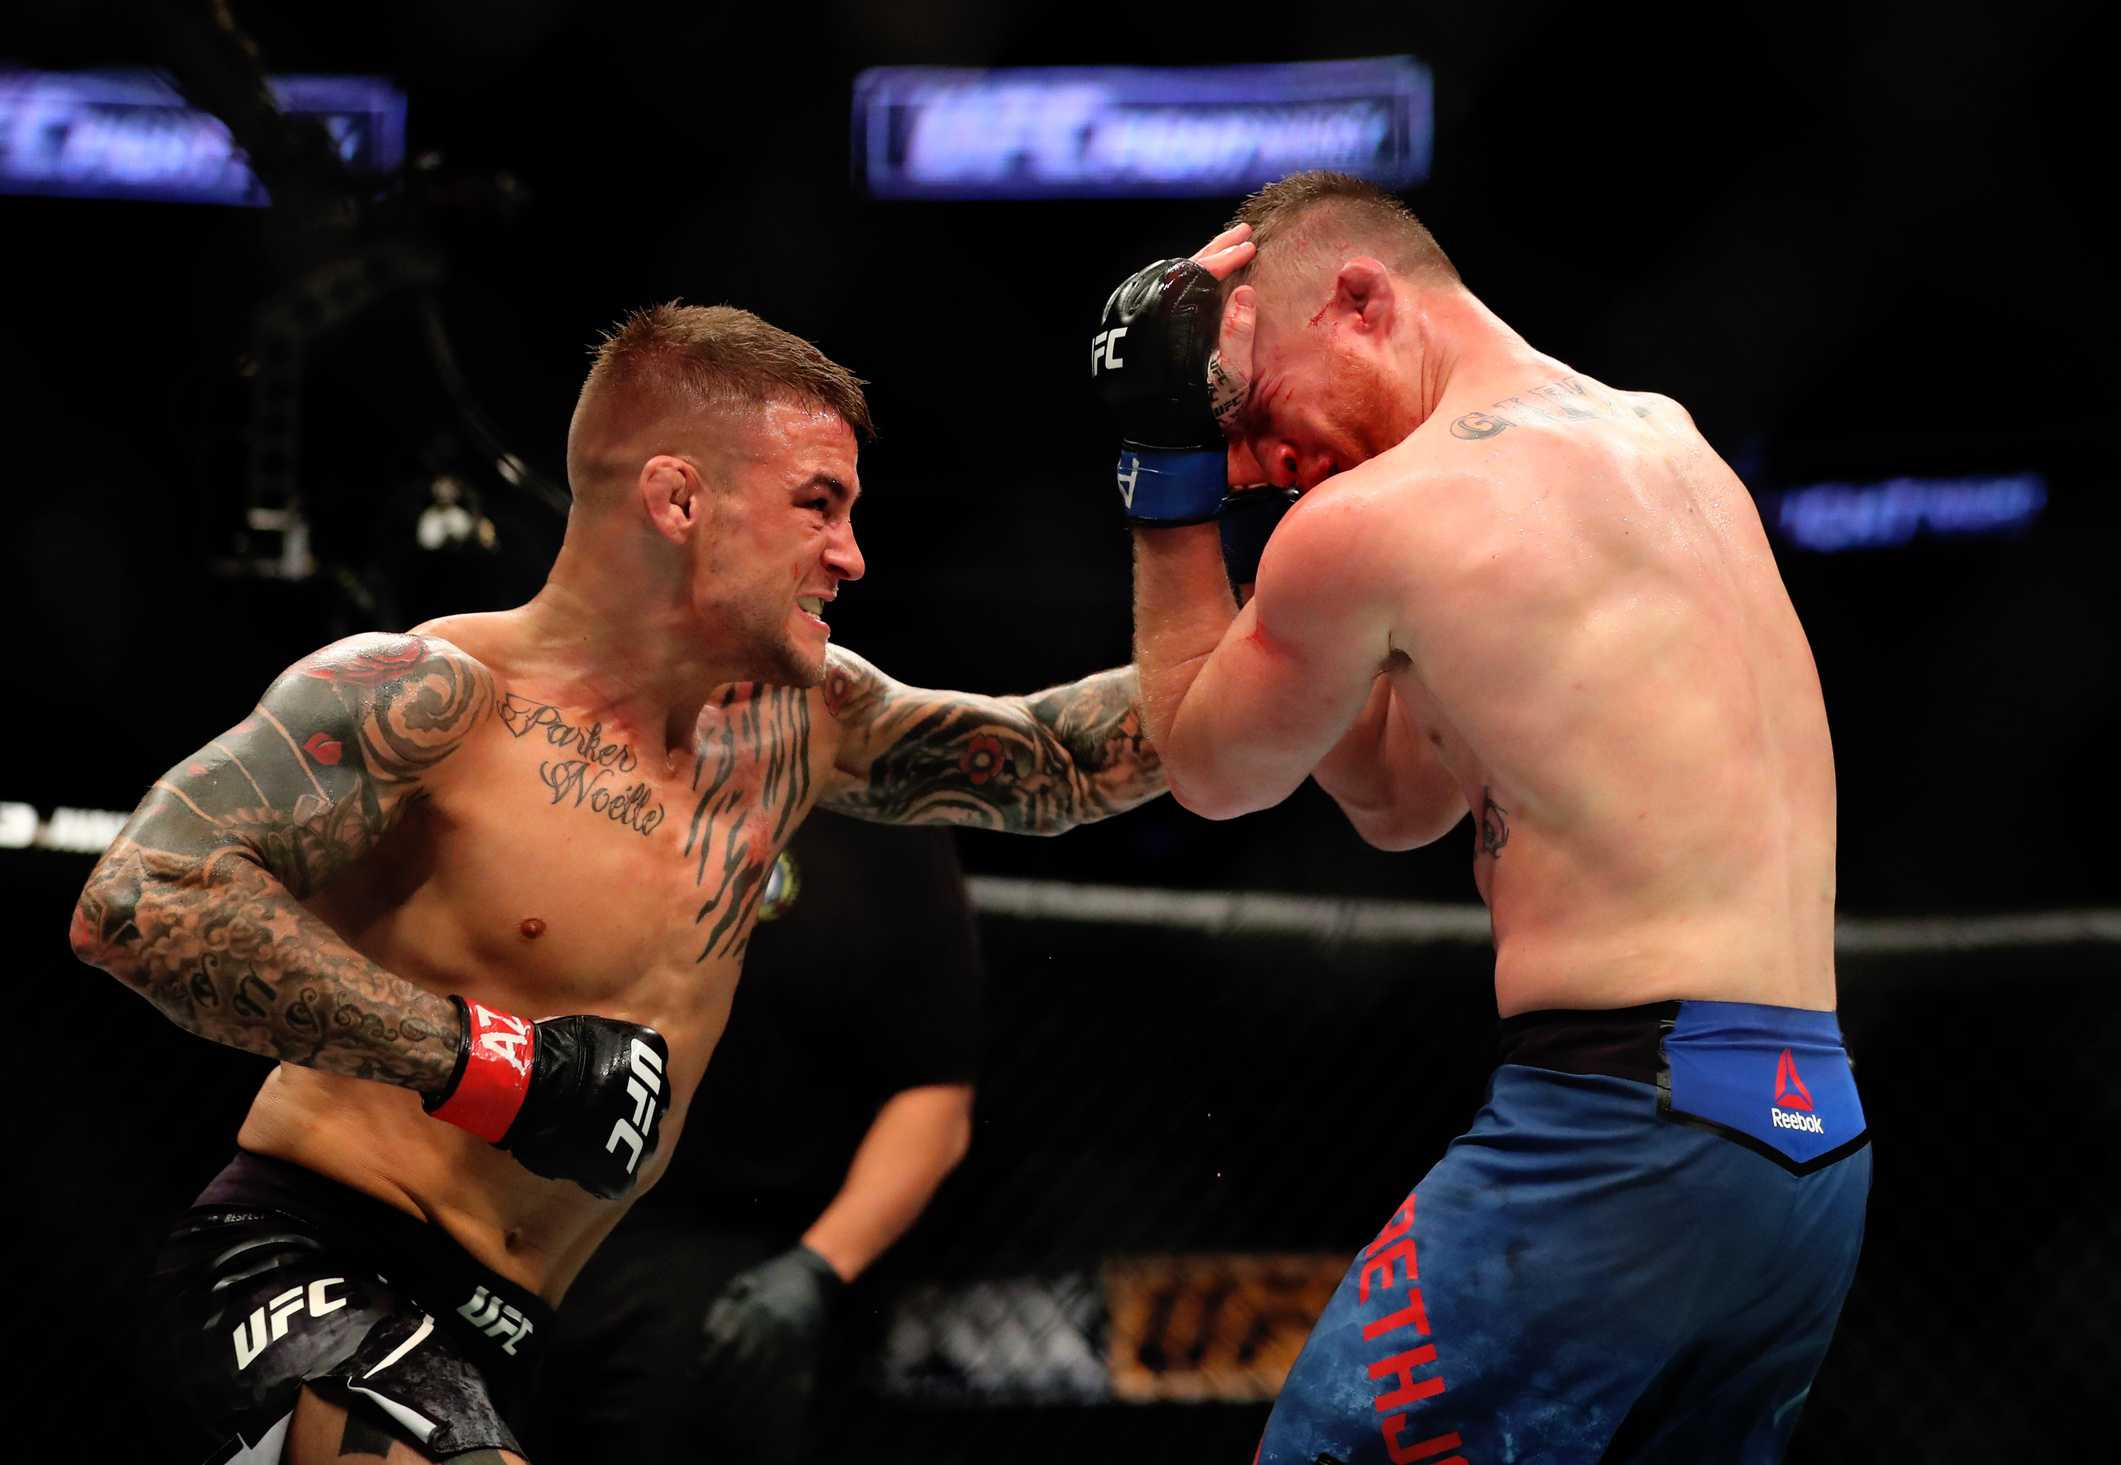 UFC: Dustin Poirier claims that he's 'paid his dues', states readiness for a Title fight - UFC